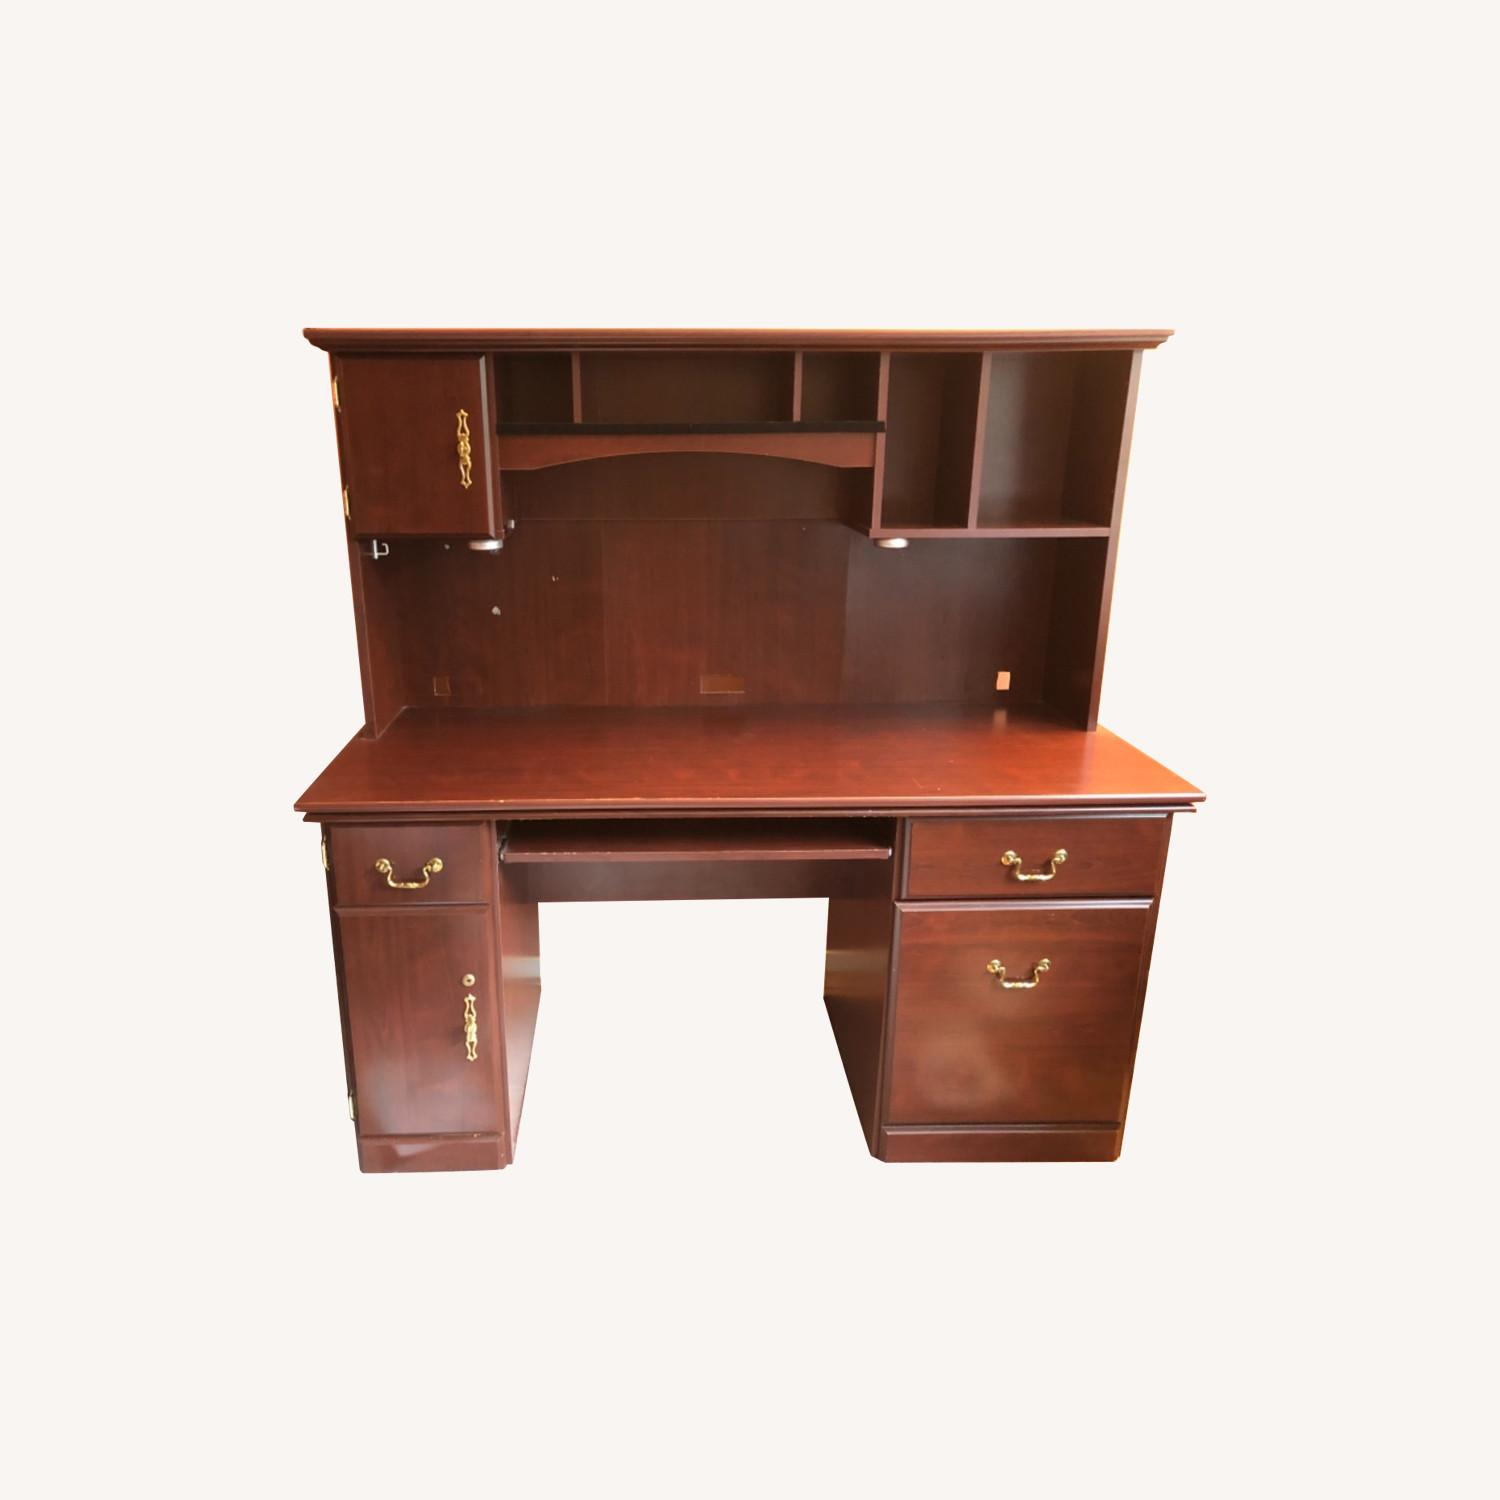 Executive Desk in Cherry Wood - image-0